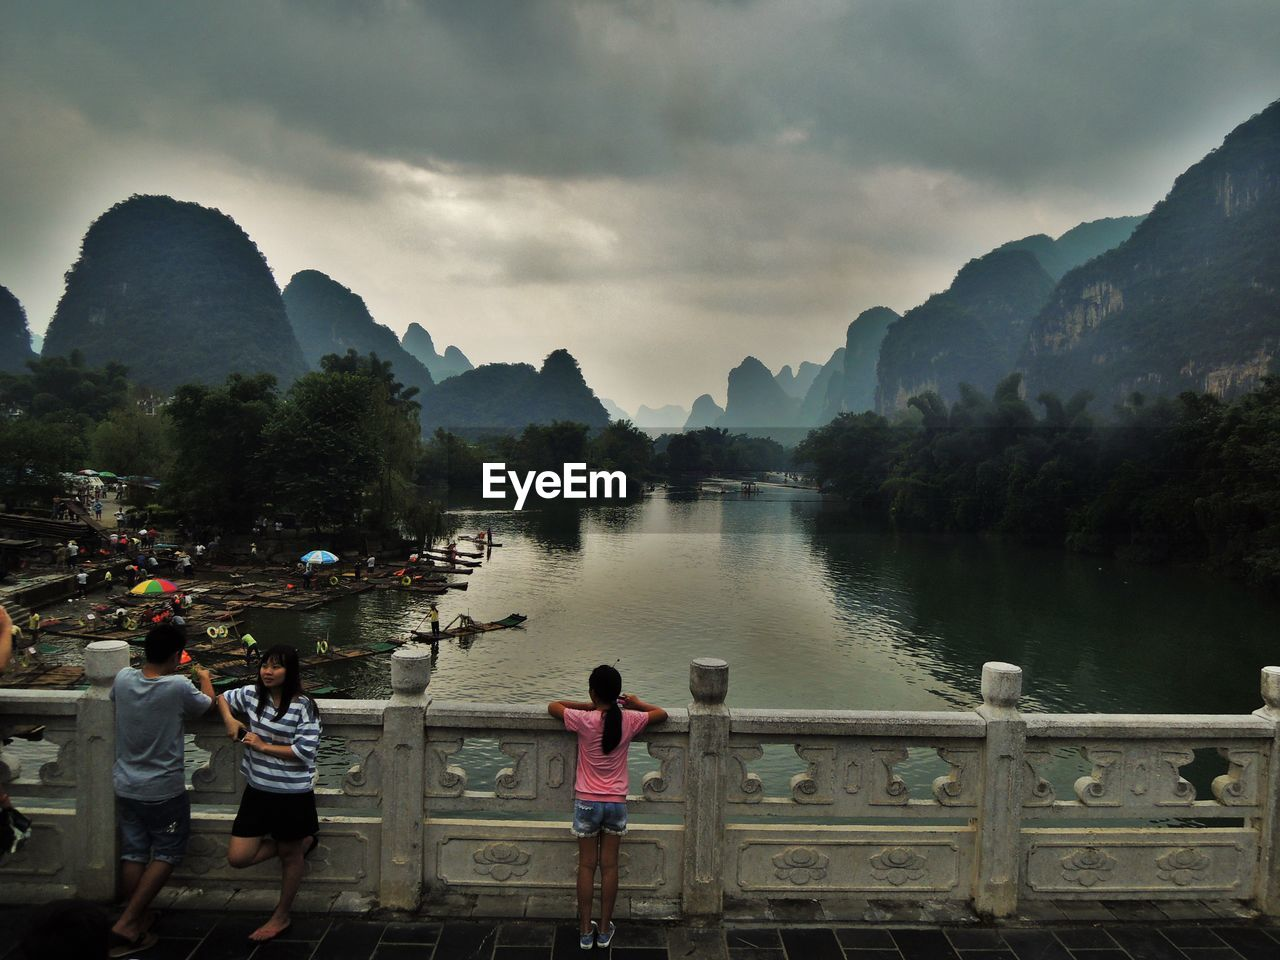 PEOPLE LOOKING AT LAKE AGAINST MOUNTAIN